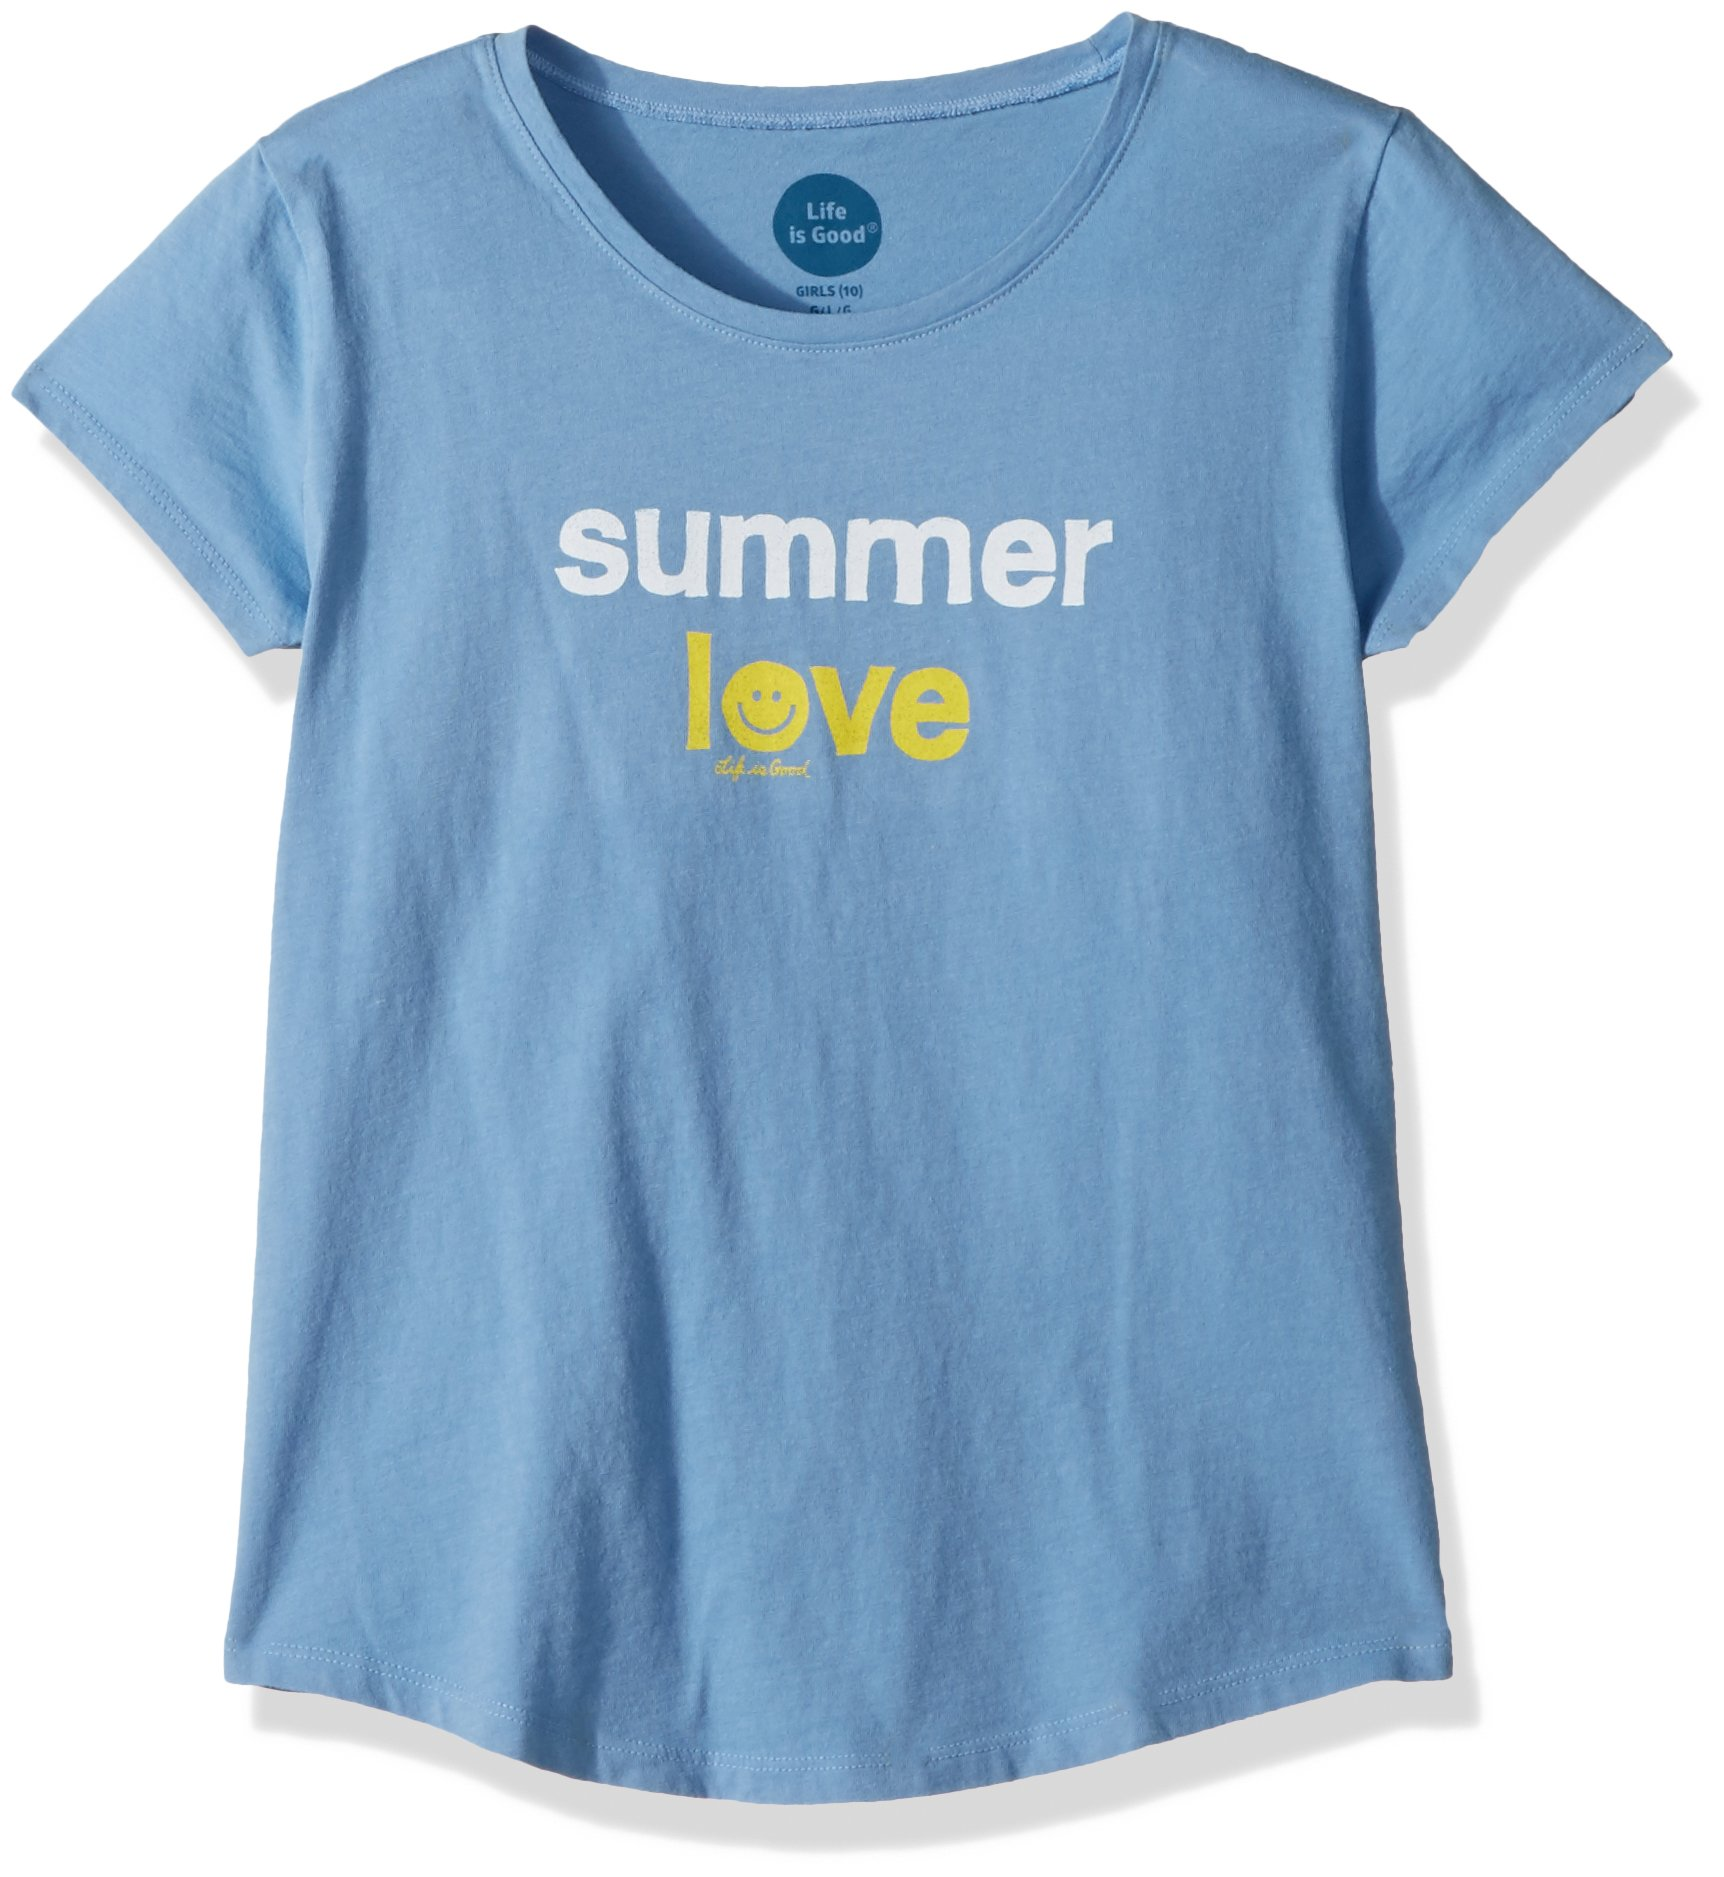 Life is Good Girl's Smiling Smooth Tee Summer Love, Powder Blue, XX-Large